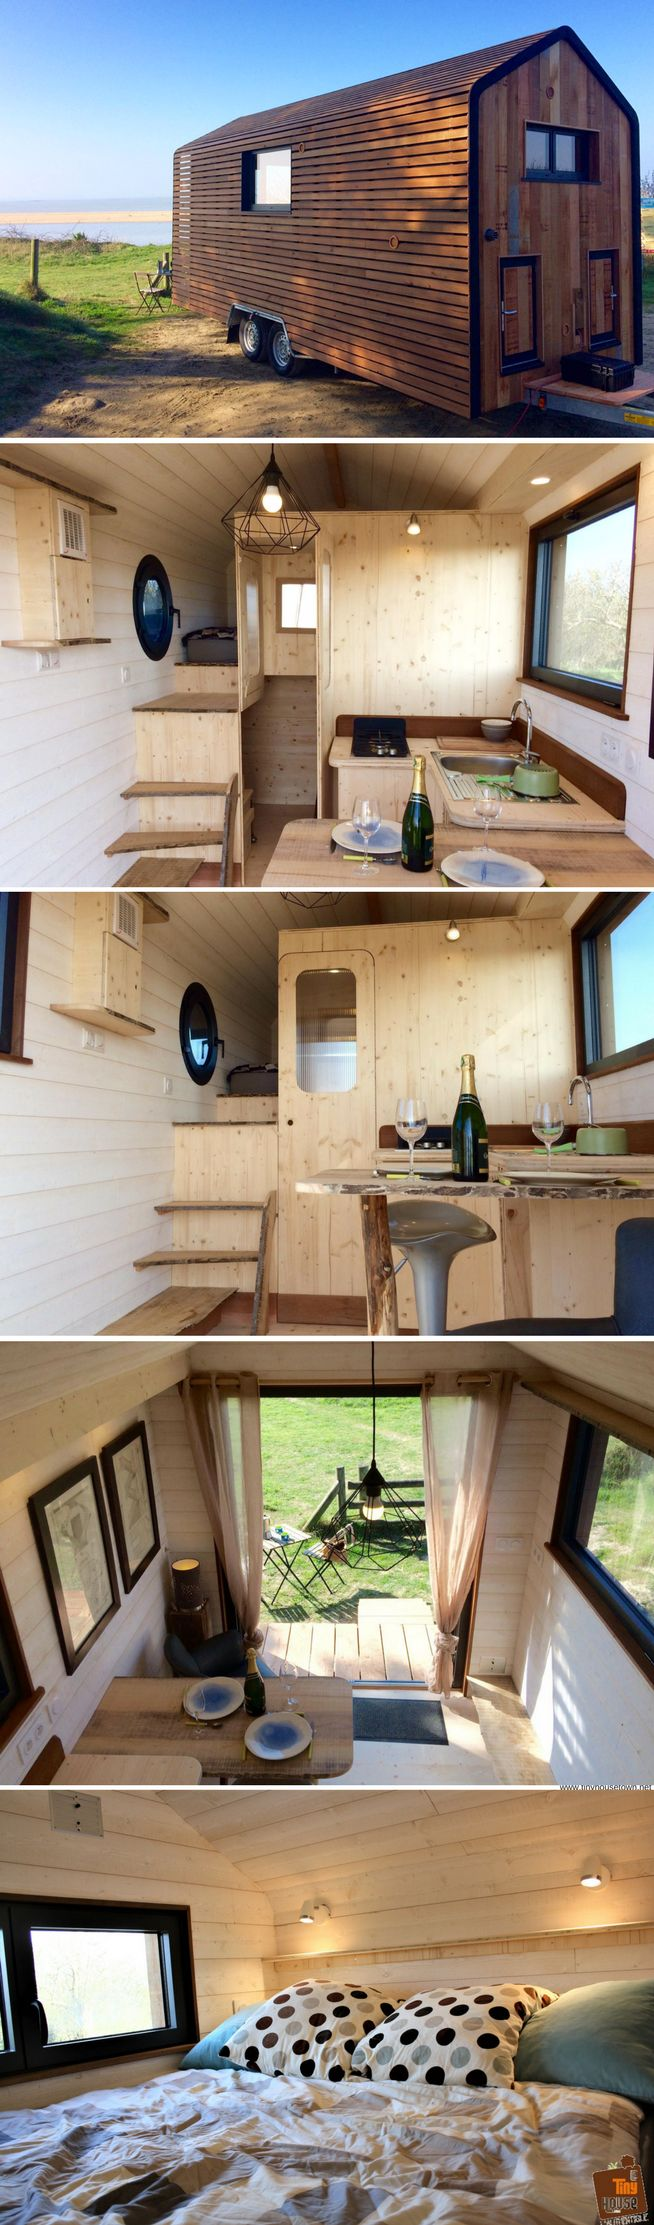 The Huttopie by La Tiny House